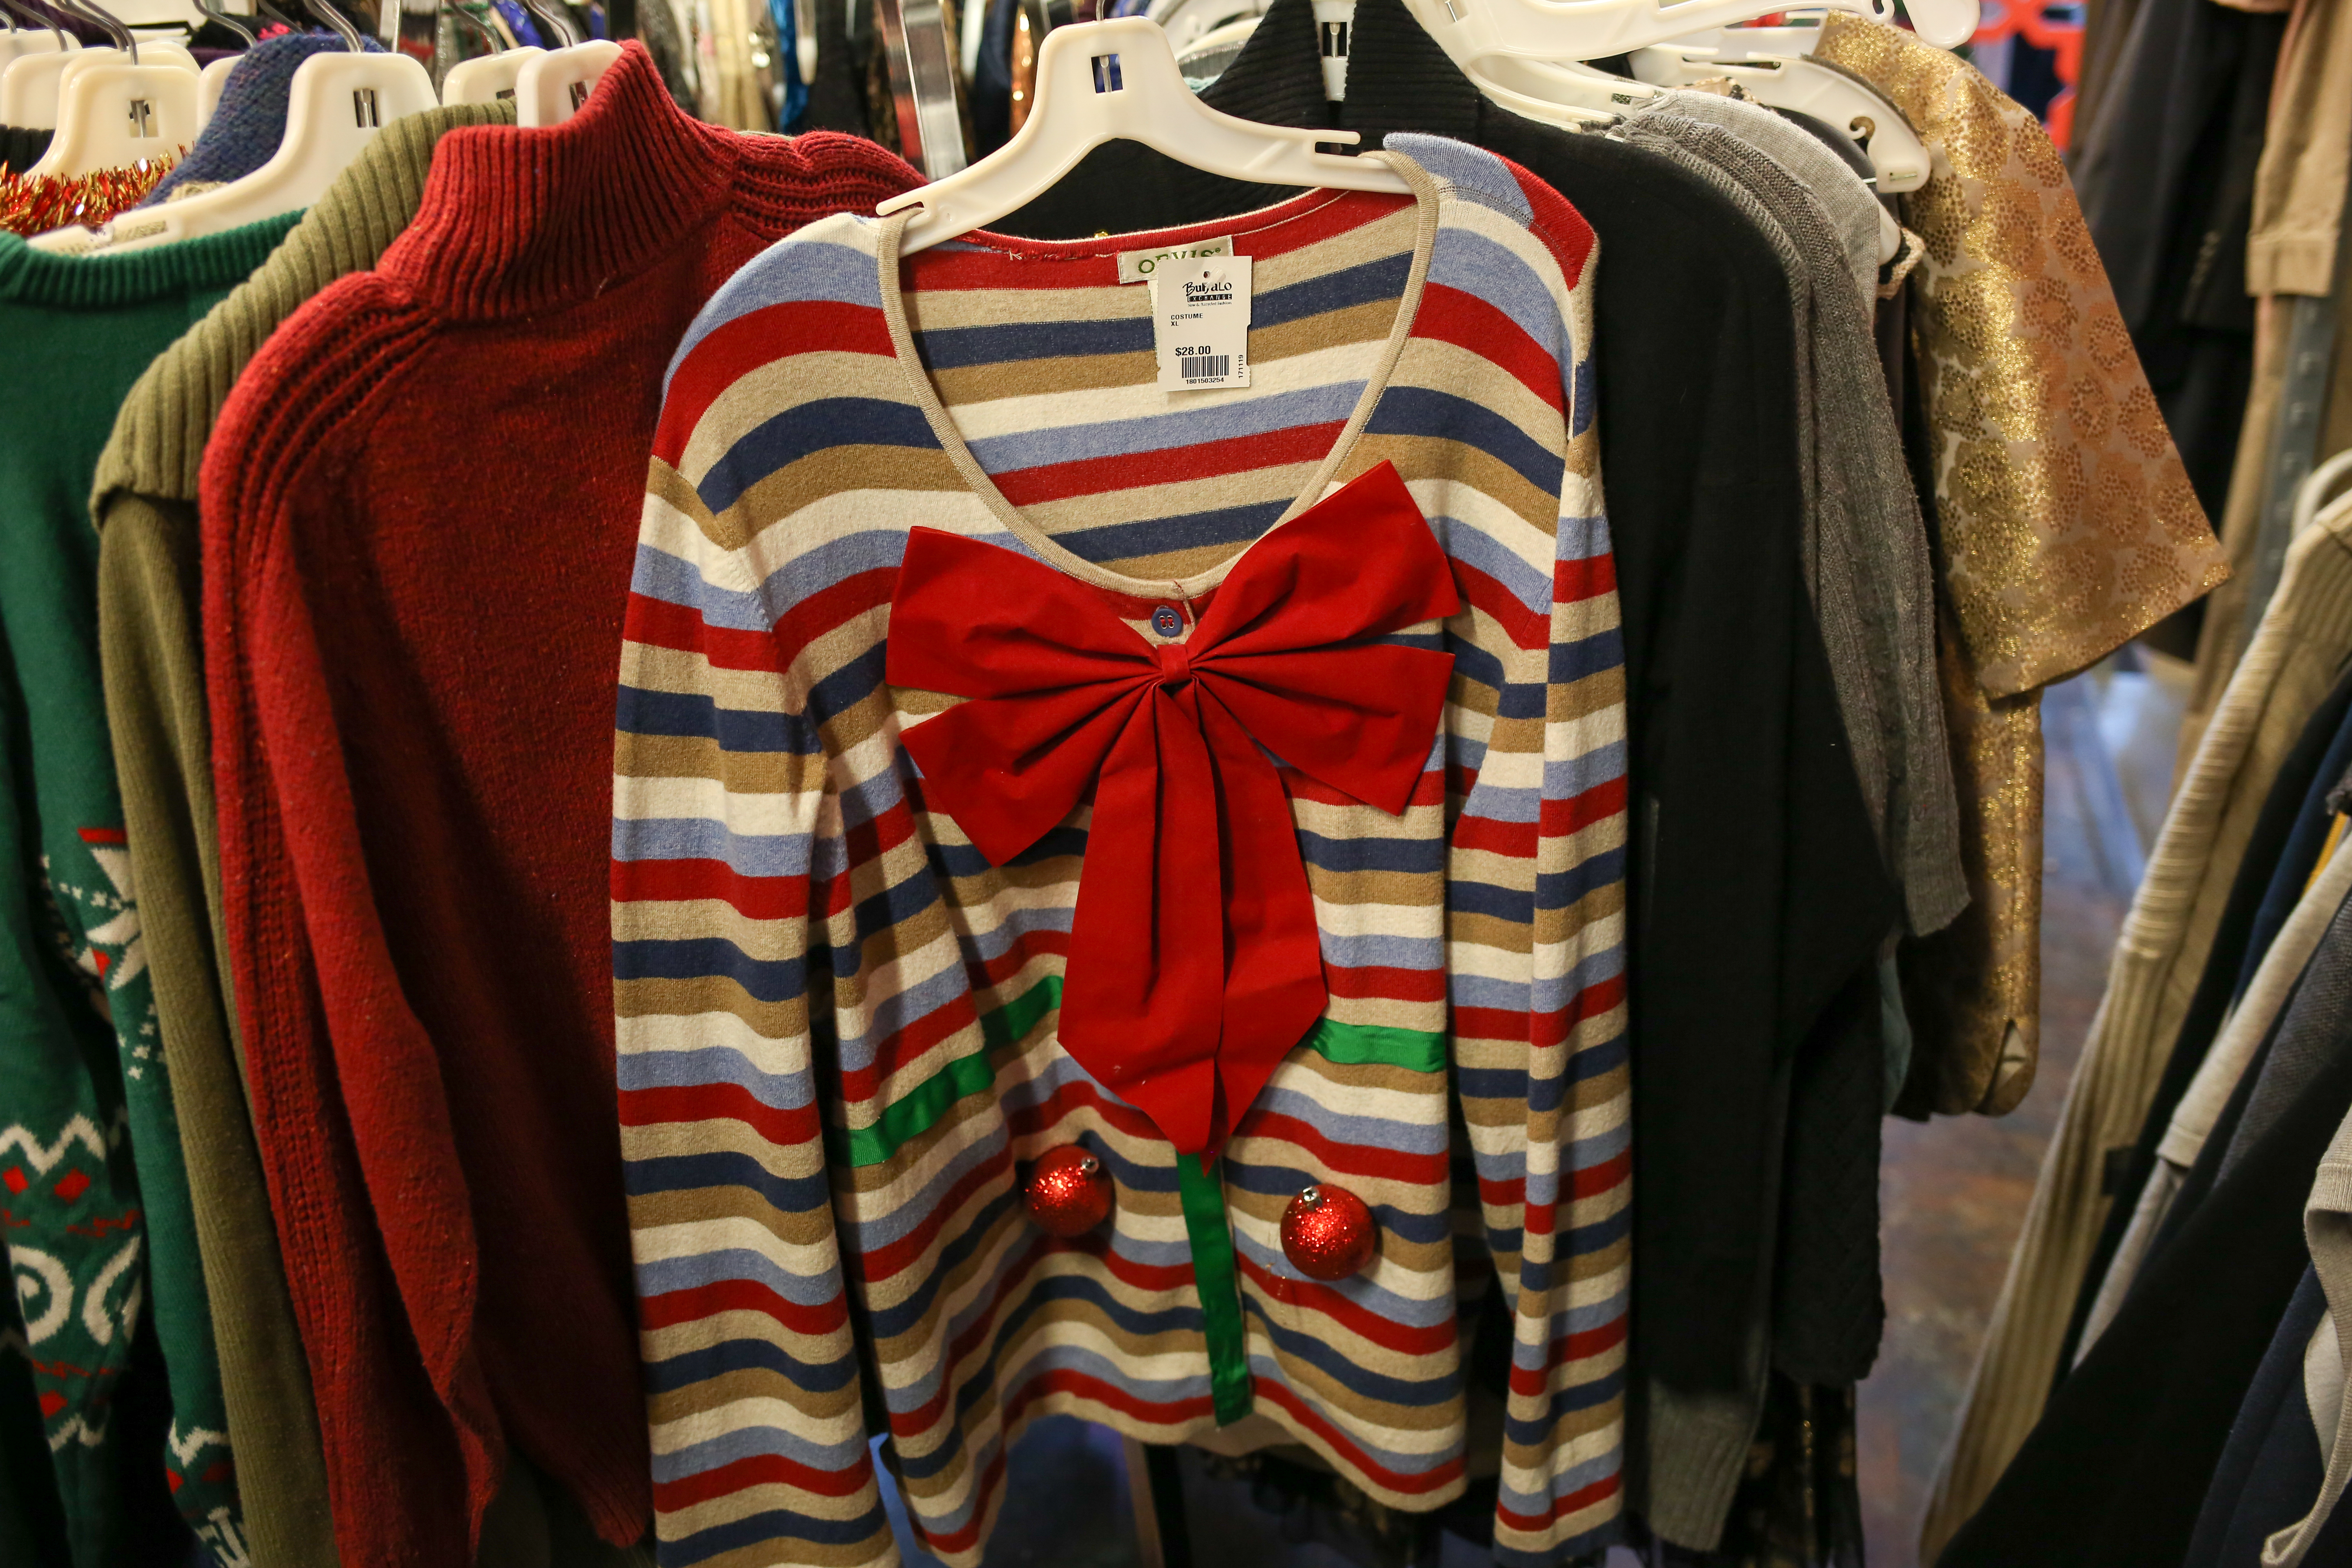 Buffalo Exchange,{ }1318 14th St NW - $28 (Amanda Andrade-Rhoades/DC Refined)